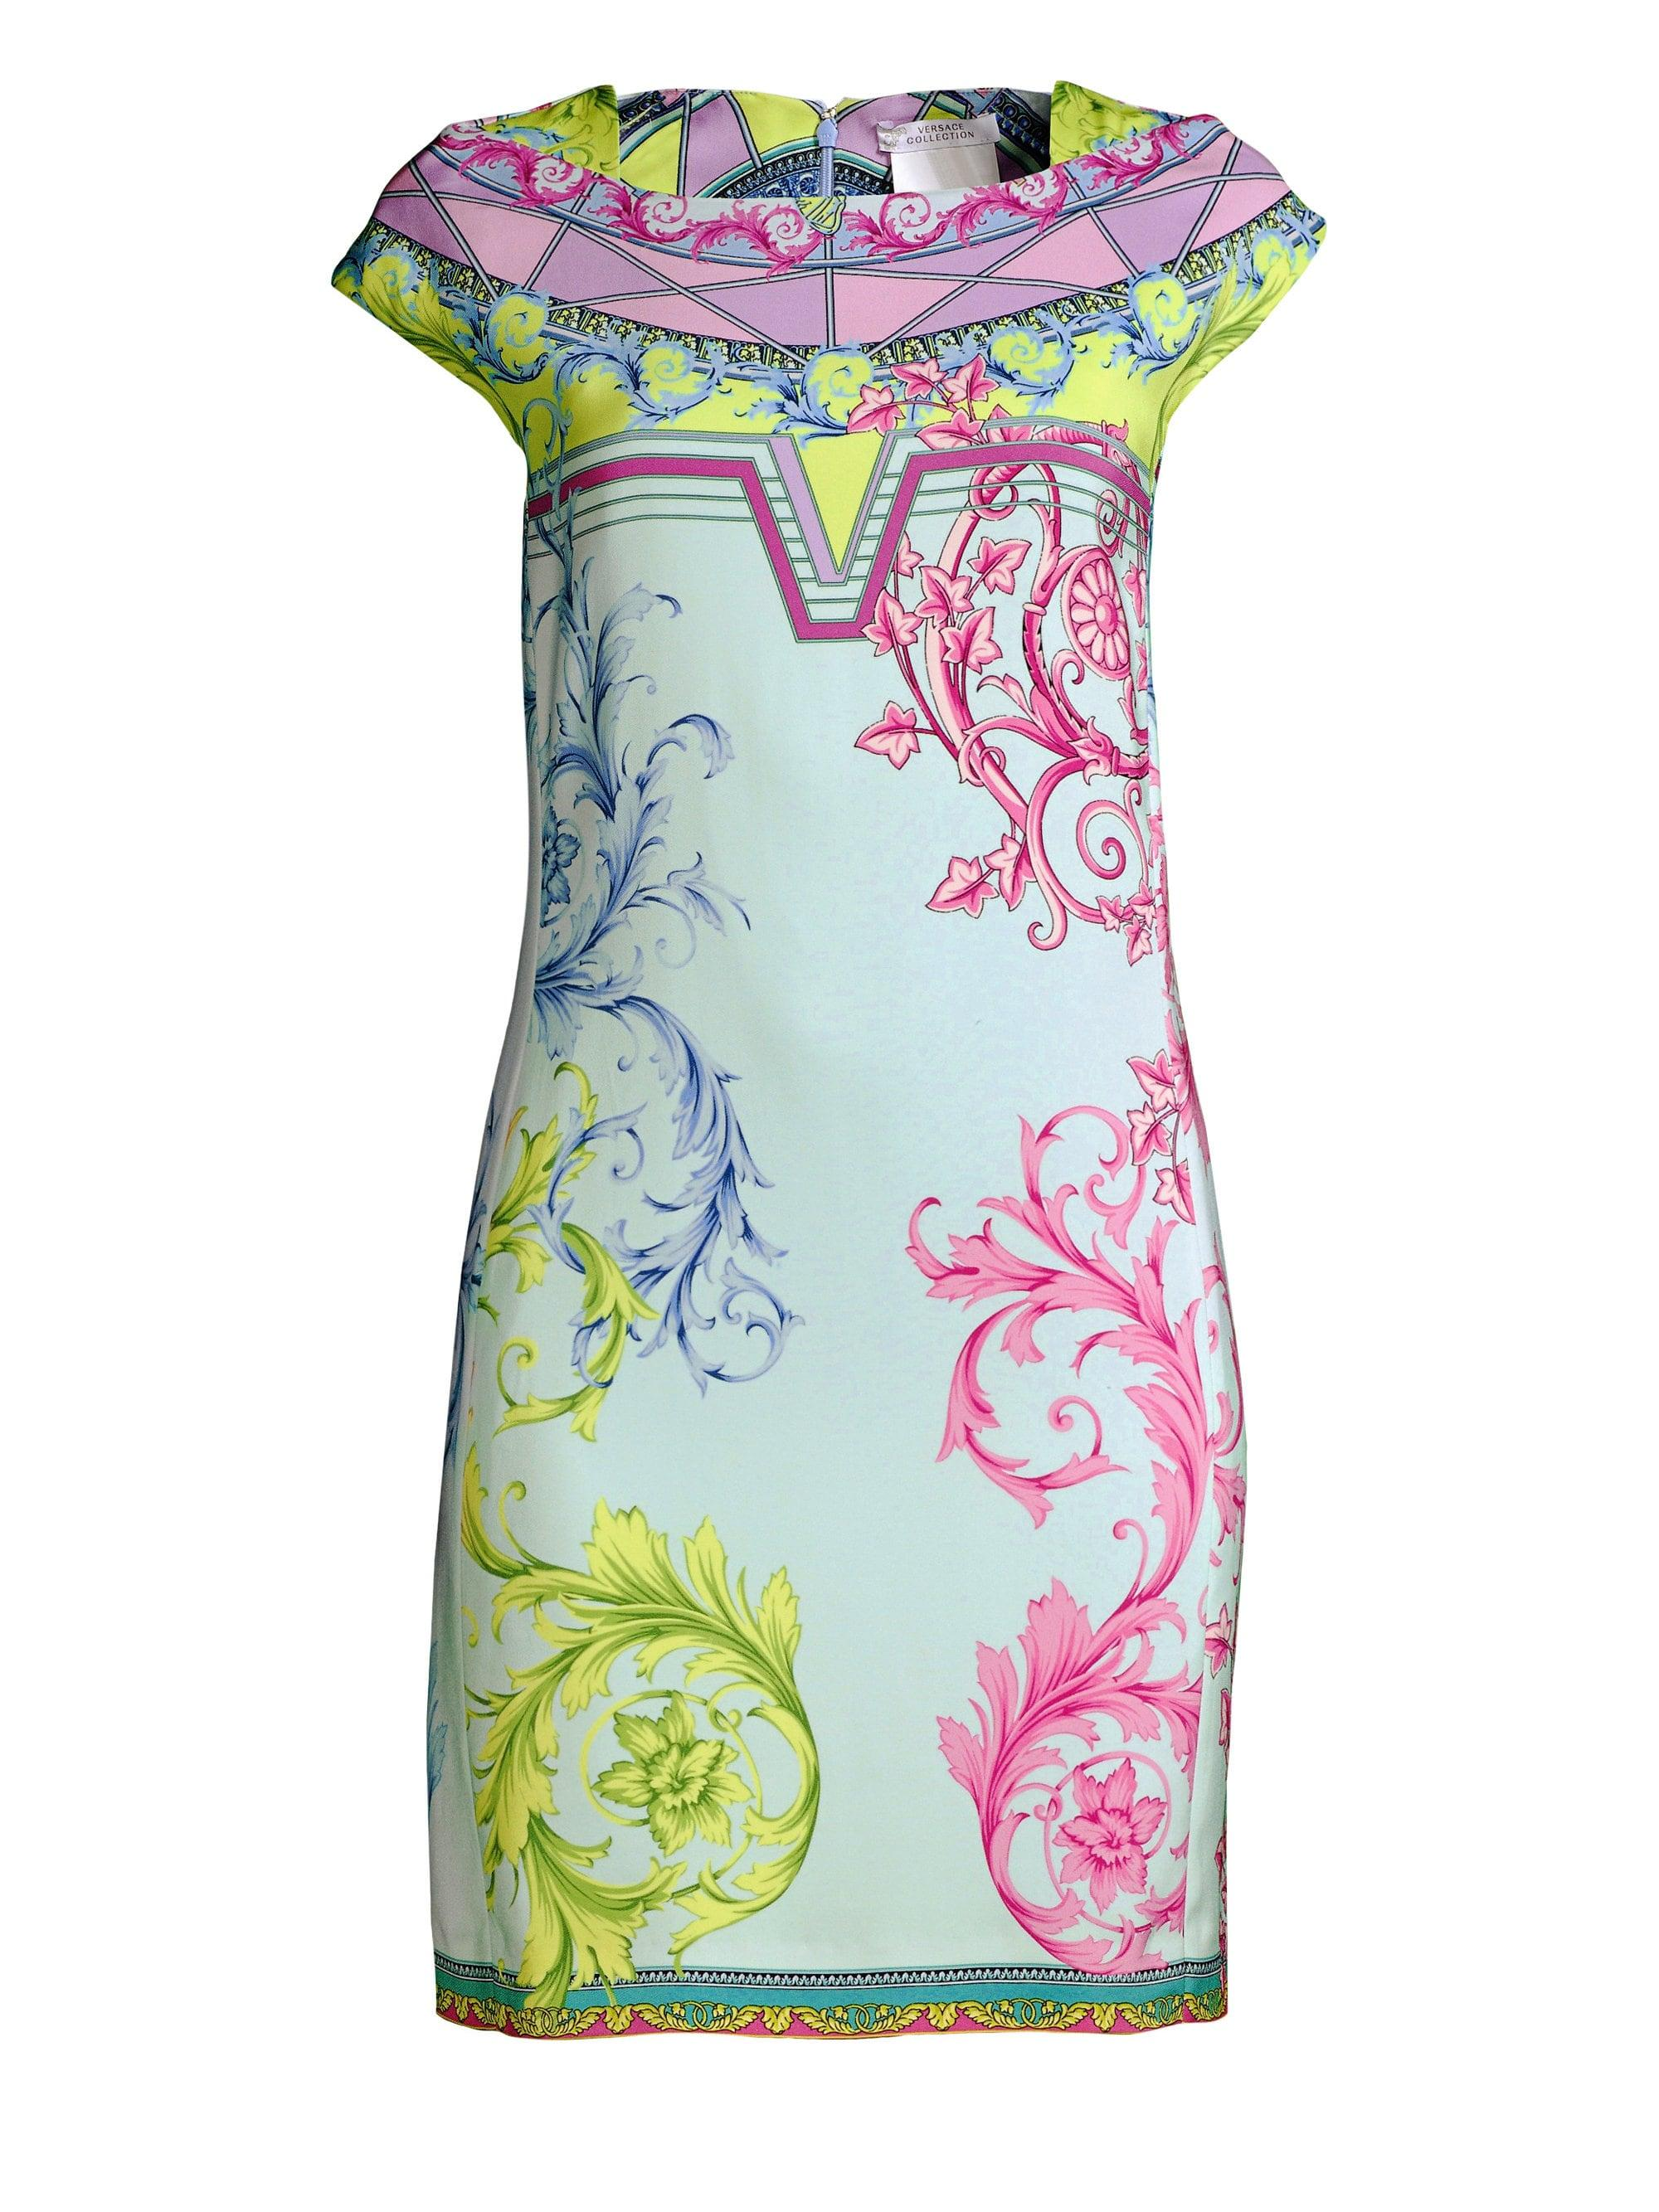 f29260ba Versace Women's Candy Ferris Wheel Print Mini Dress - Light Blue